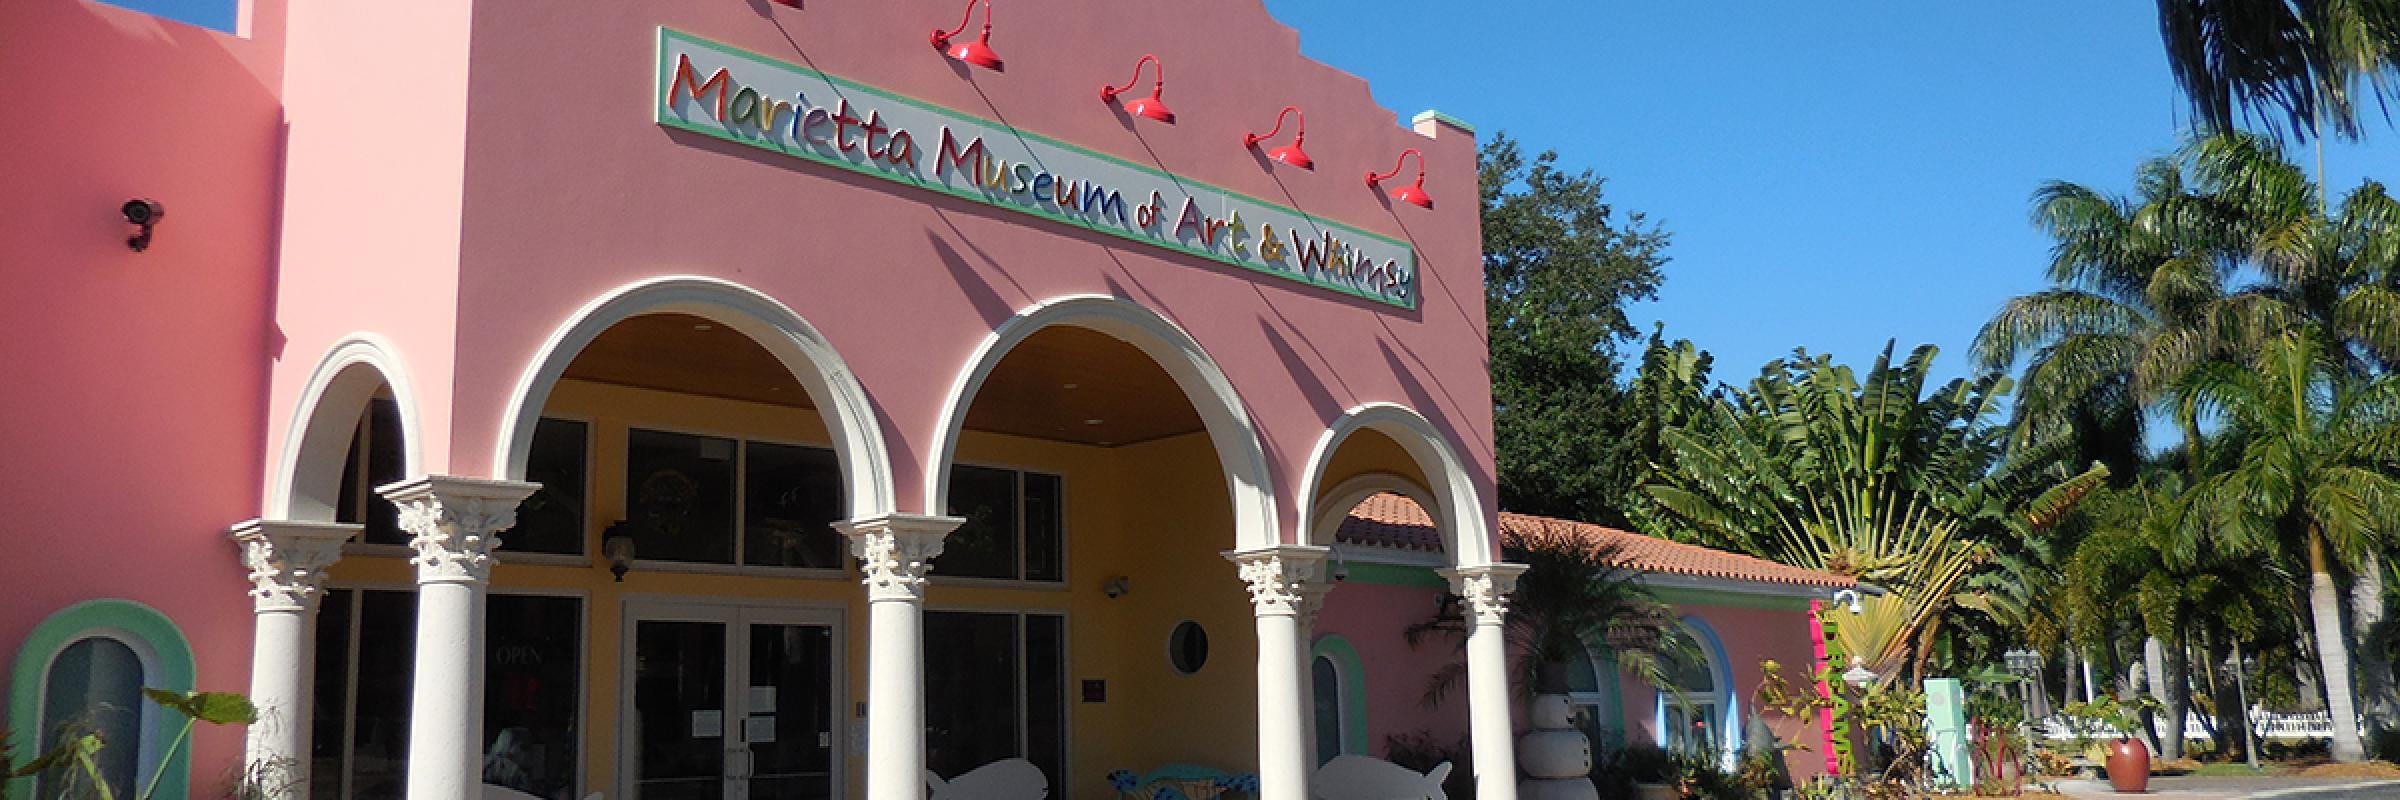 Marietta Museum of Art & Whimsy